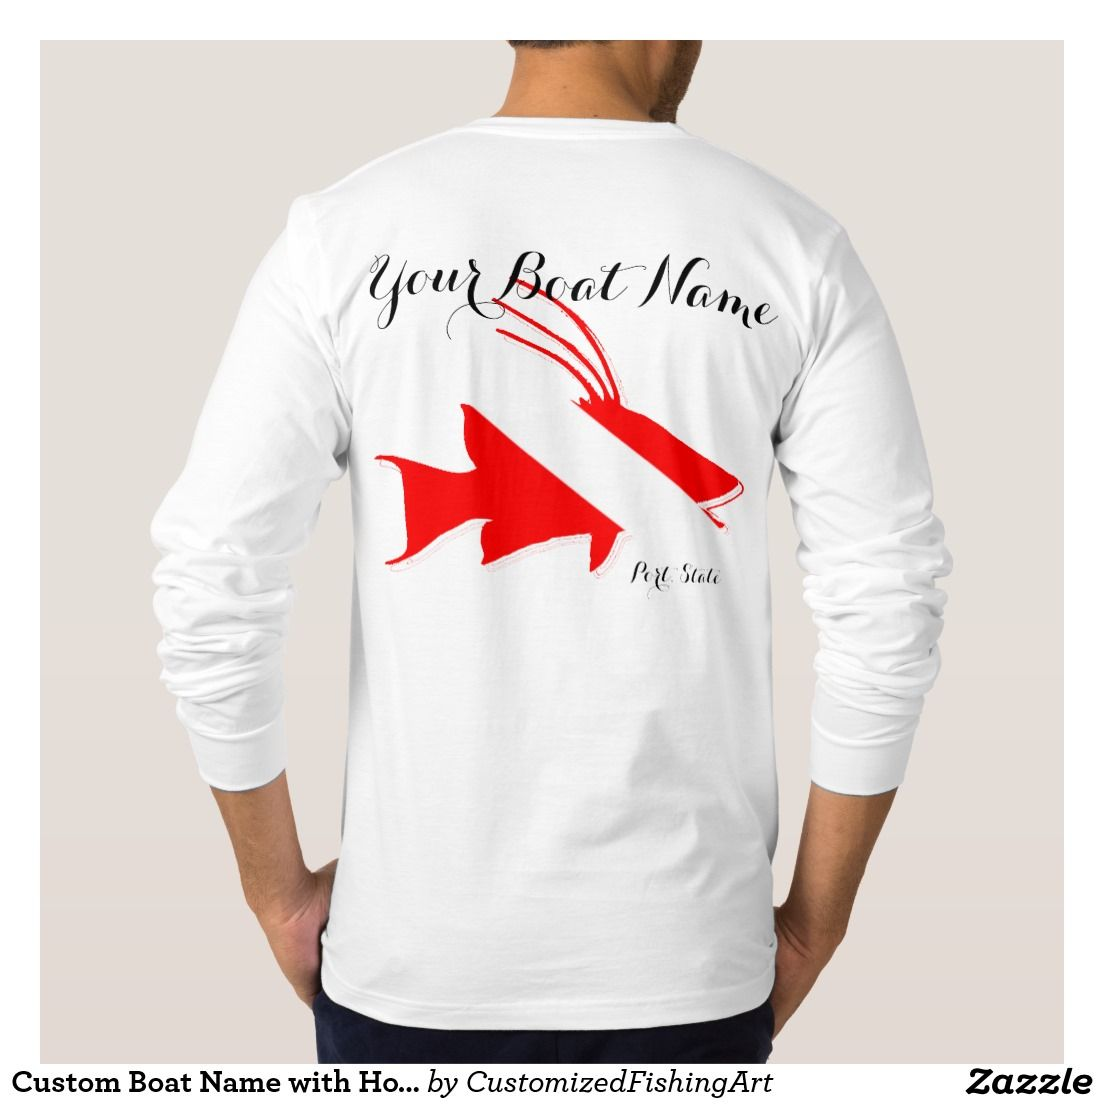 Design your own t shirt zazzle - You Can Choose From Lots Of Different Shirt Styles And You Can Change The Text Style And Color Really Cool Way To Create Your Own